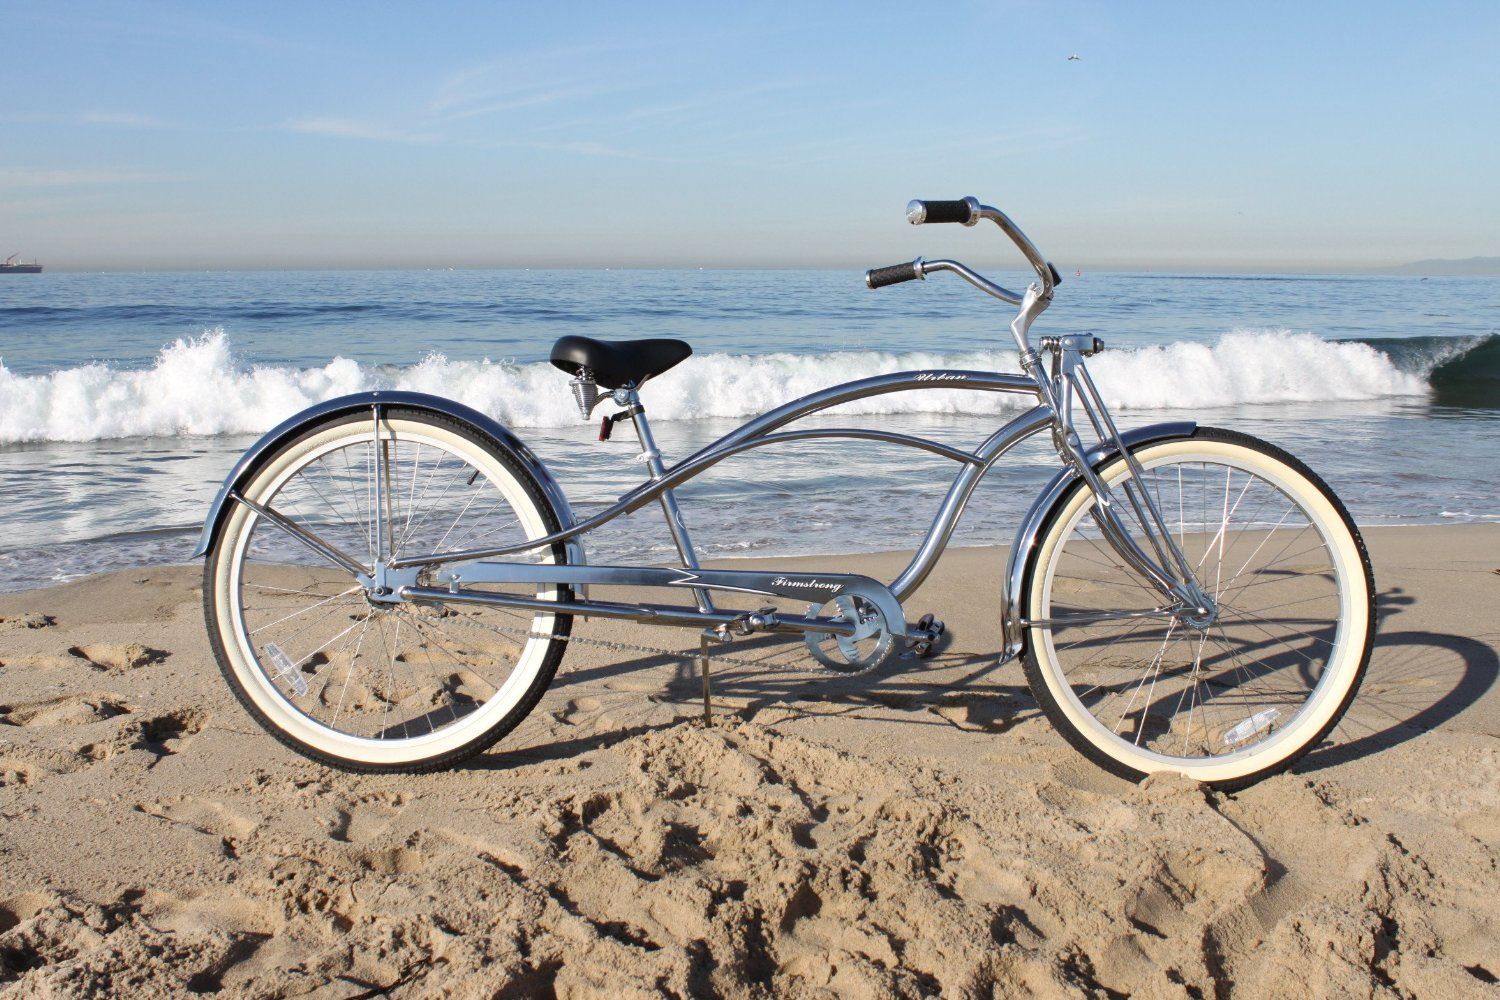 Stretch cruiser bike